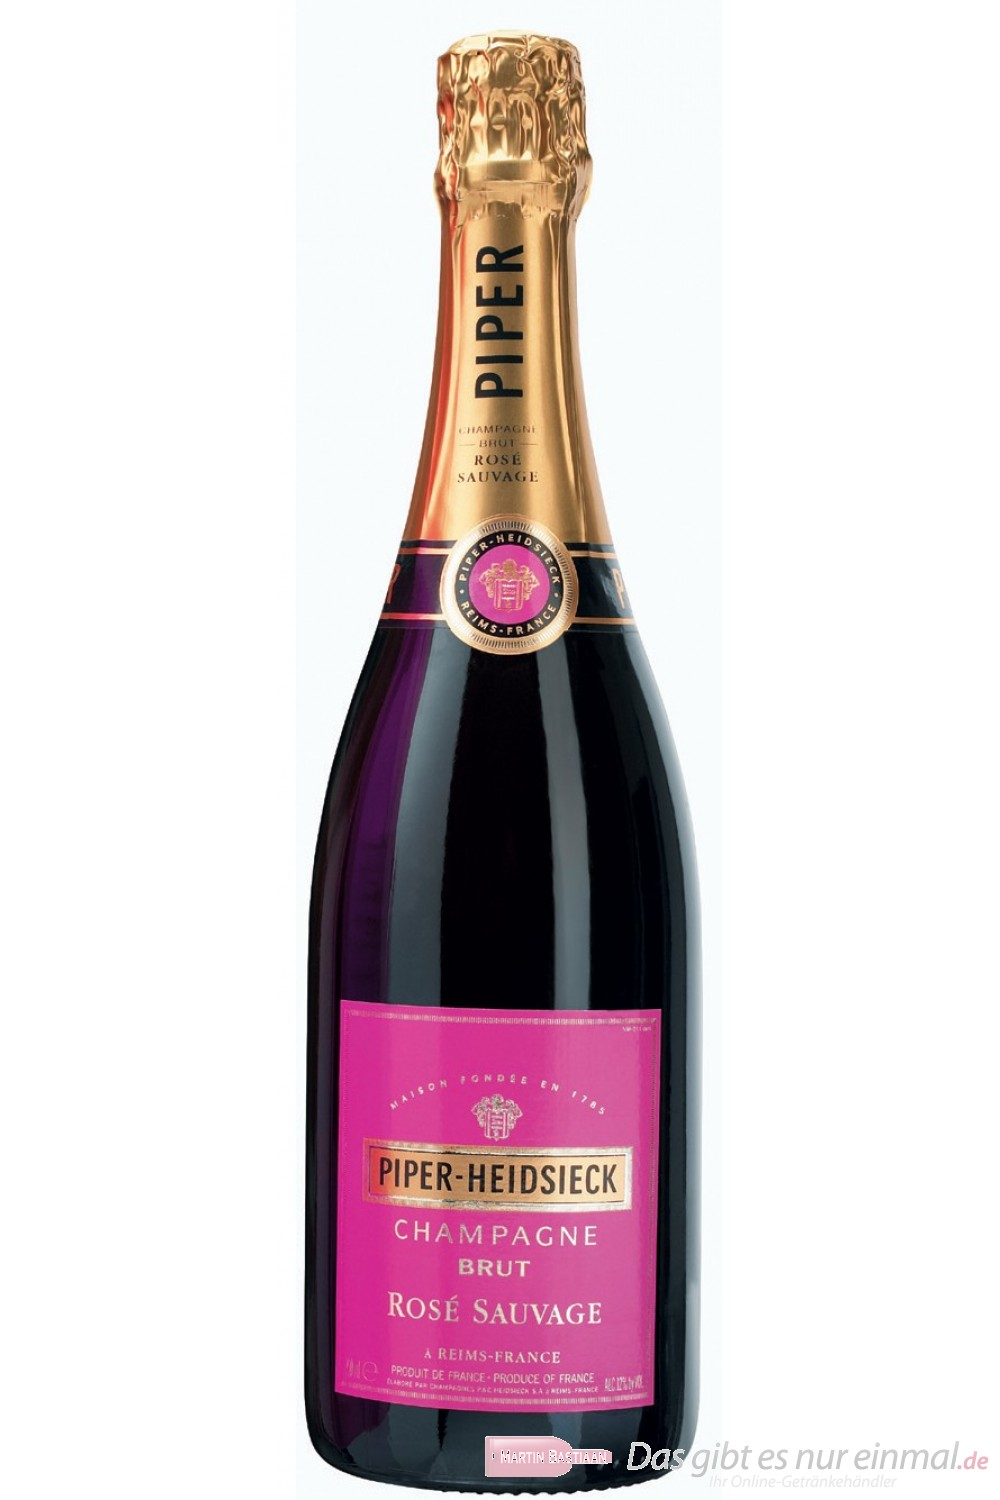 Piper Heidsieck Champagner Rosé Sauvage 12% 0,75l Flasche